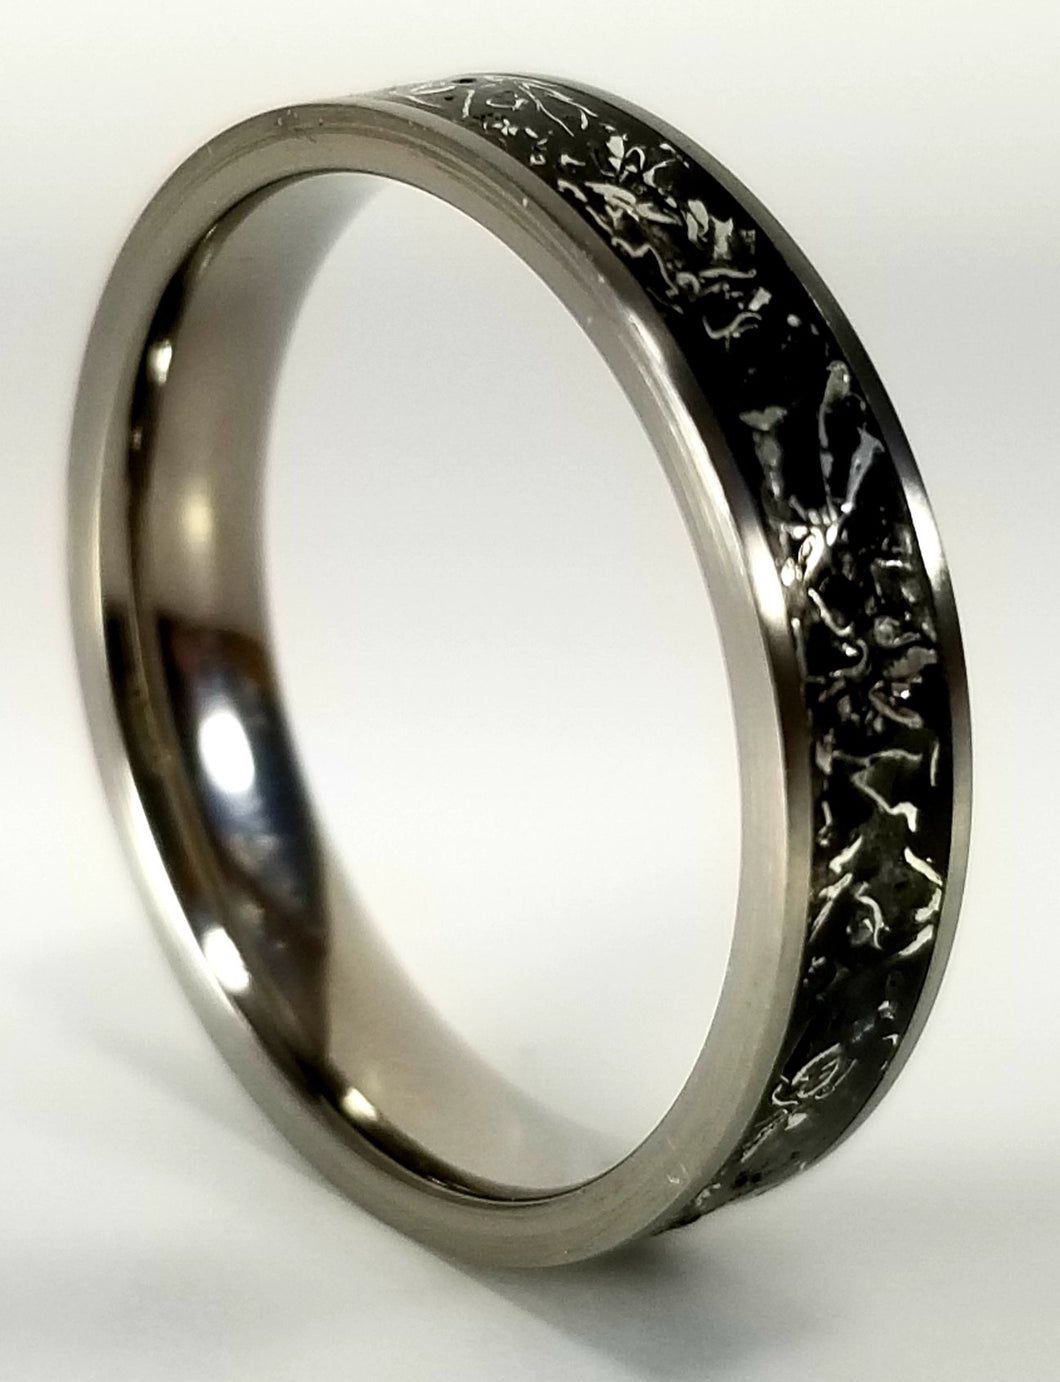 IPI Creations Carbon Capture Ring - Narrow Band